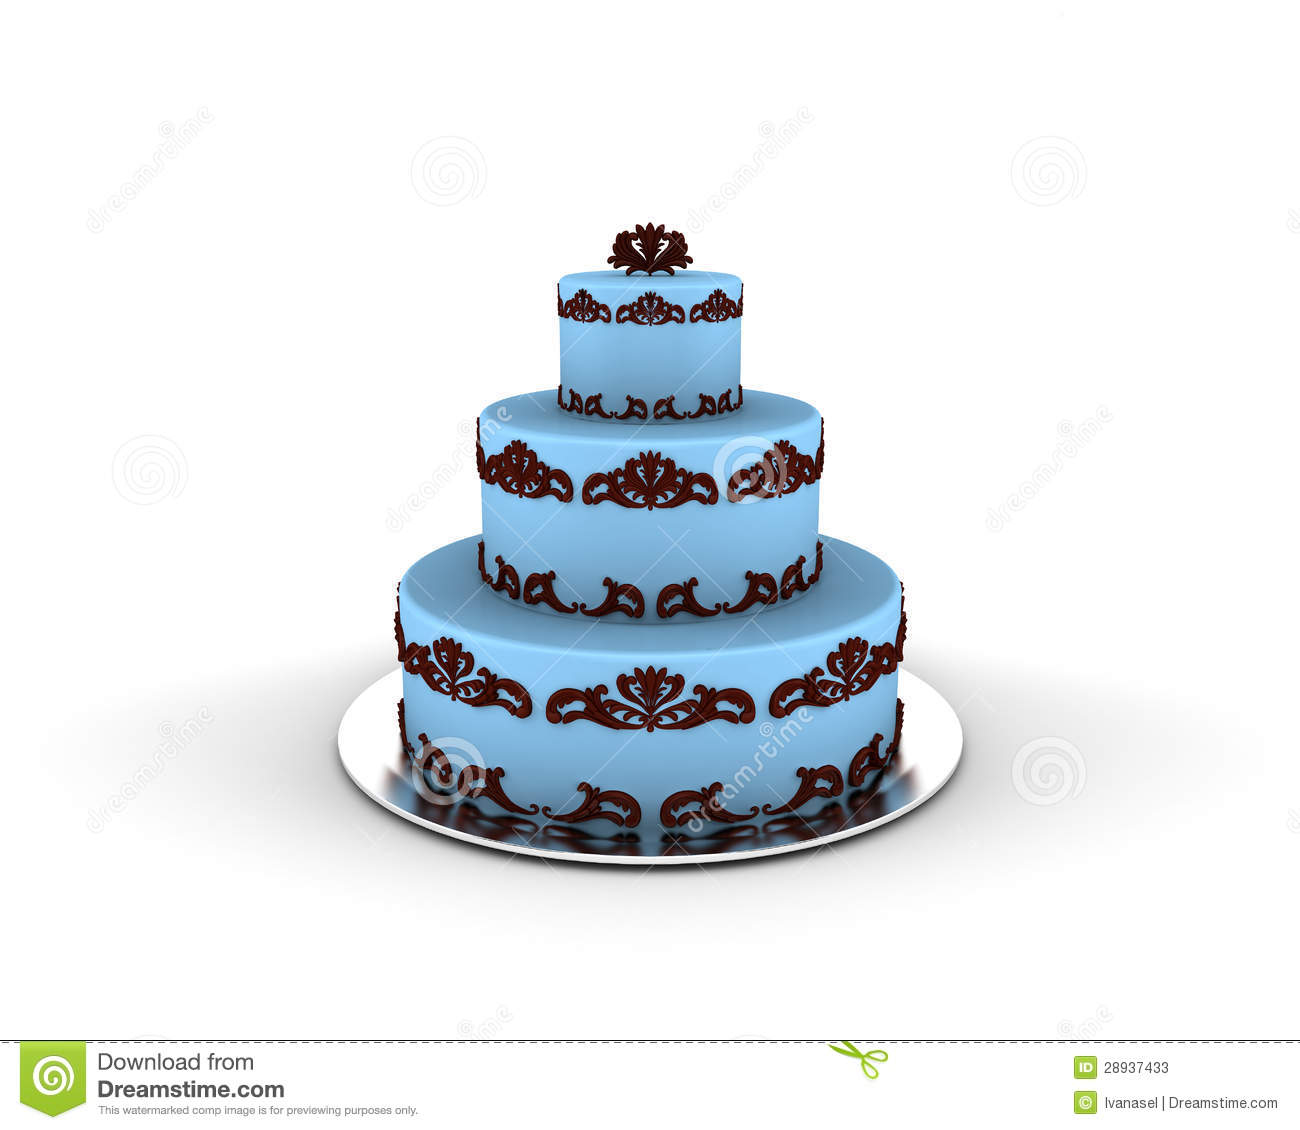 Blue Cake On Three Floors With Chocolate Ornaments On It